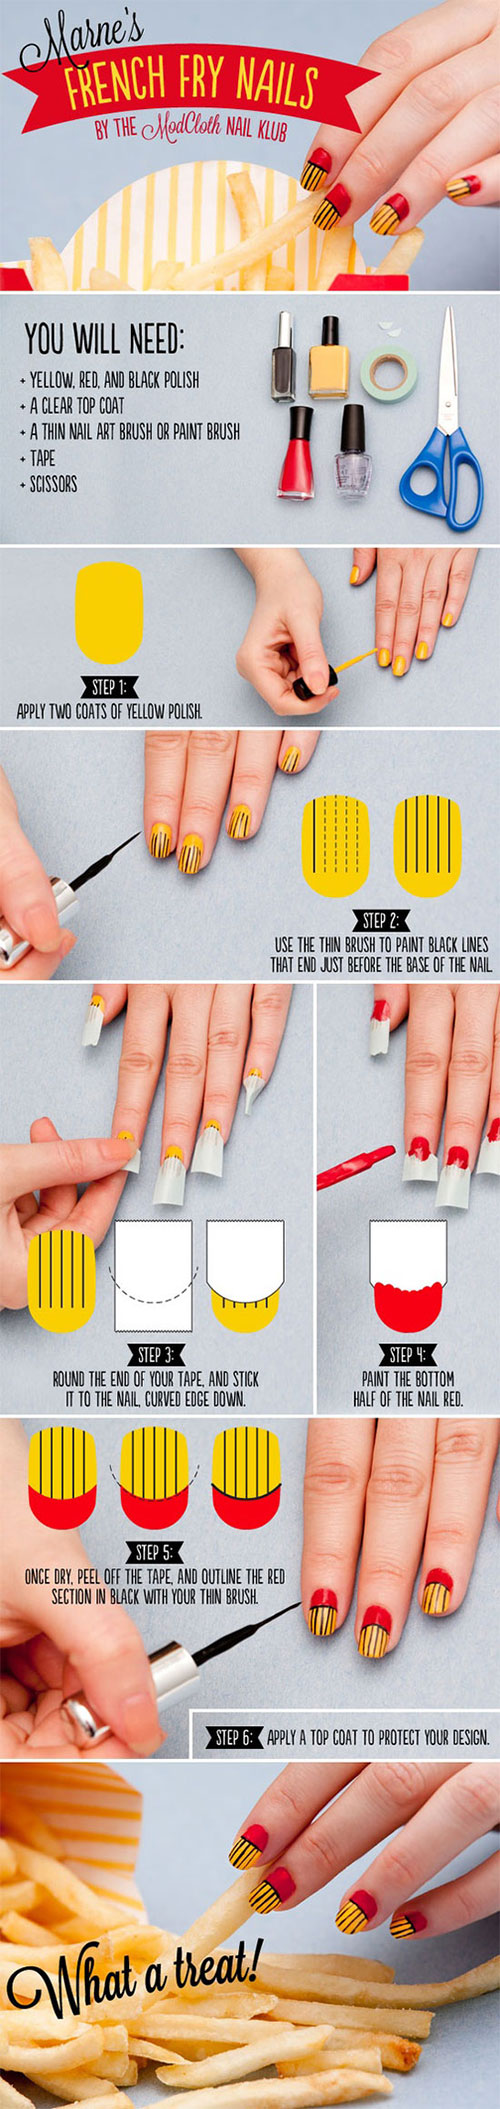 Simple-Nail-Art-Tutorials-For-Beginners-Learners-2013-2014-6